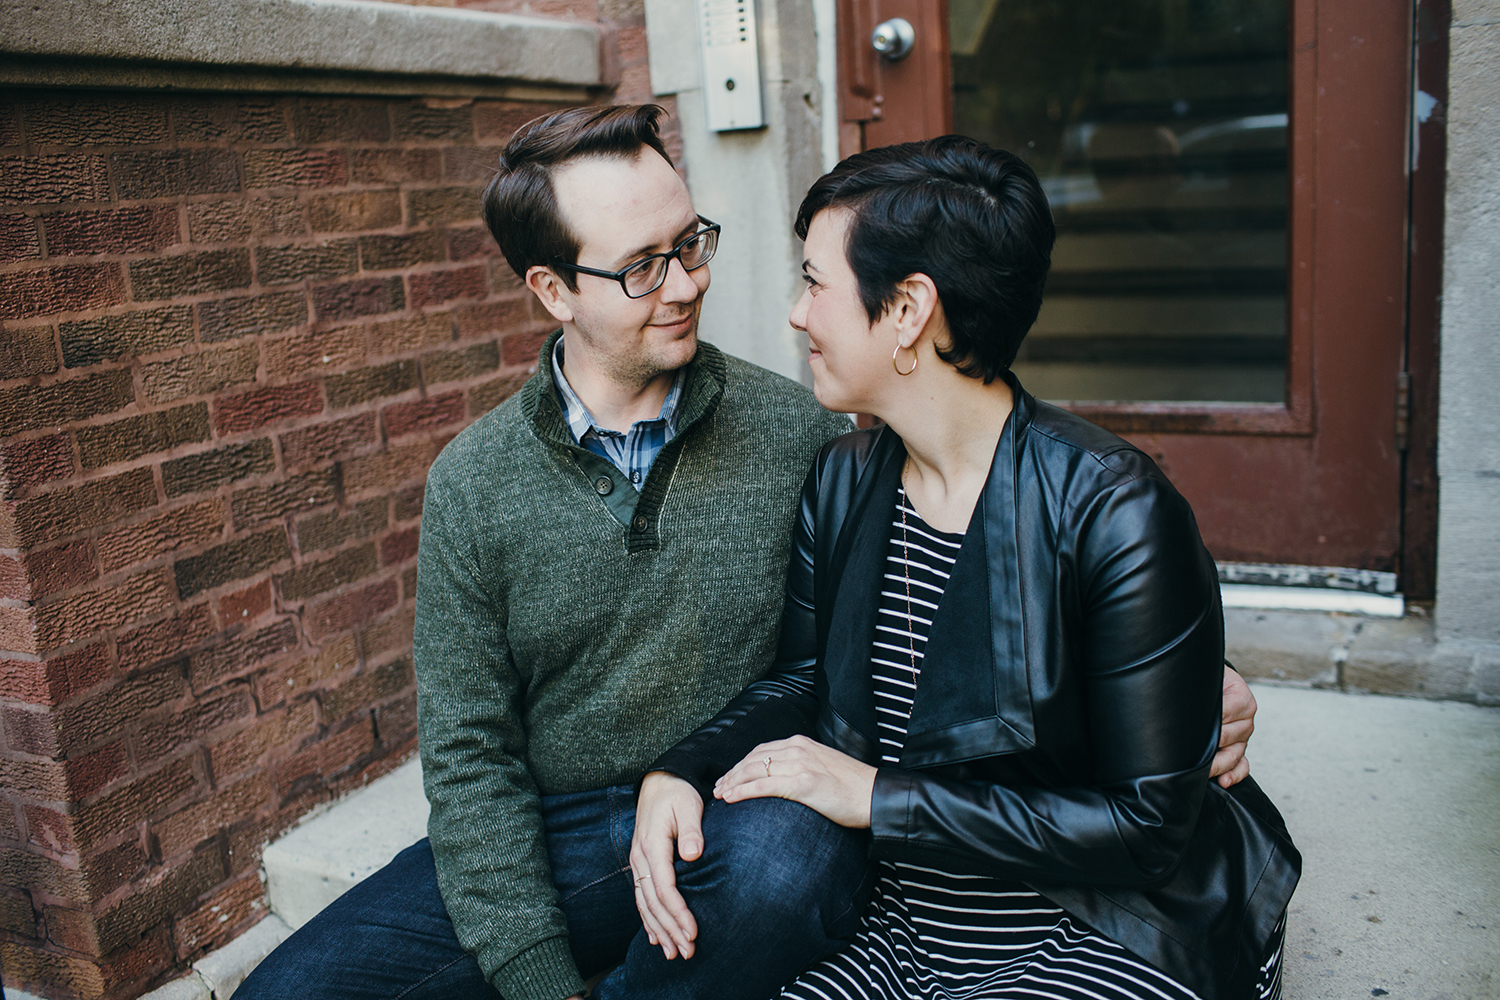 chicago_engagement_photos_logan_square_west_side_elearnor_mark (17 of 32).jpg